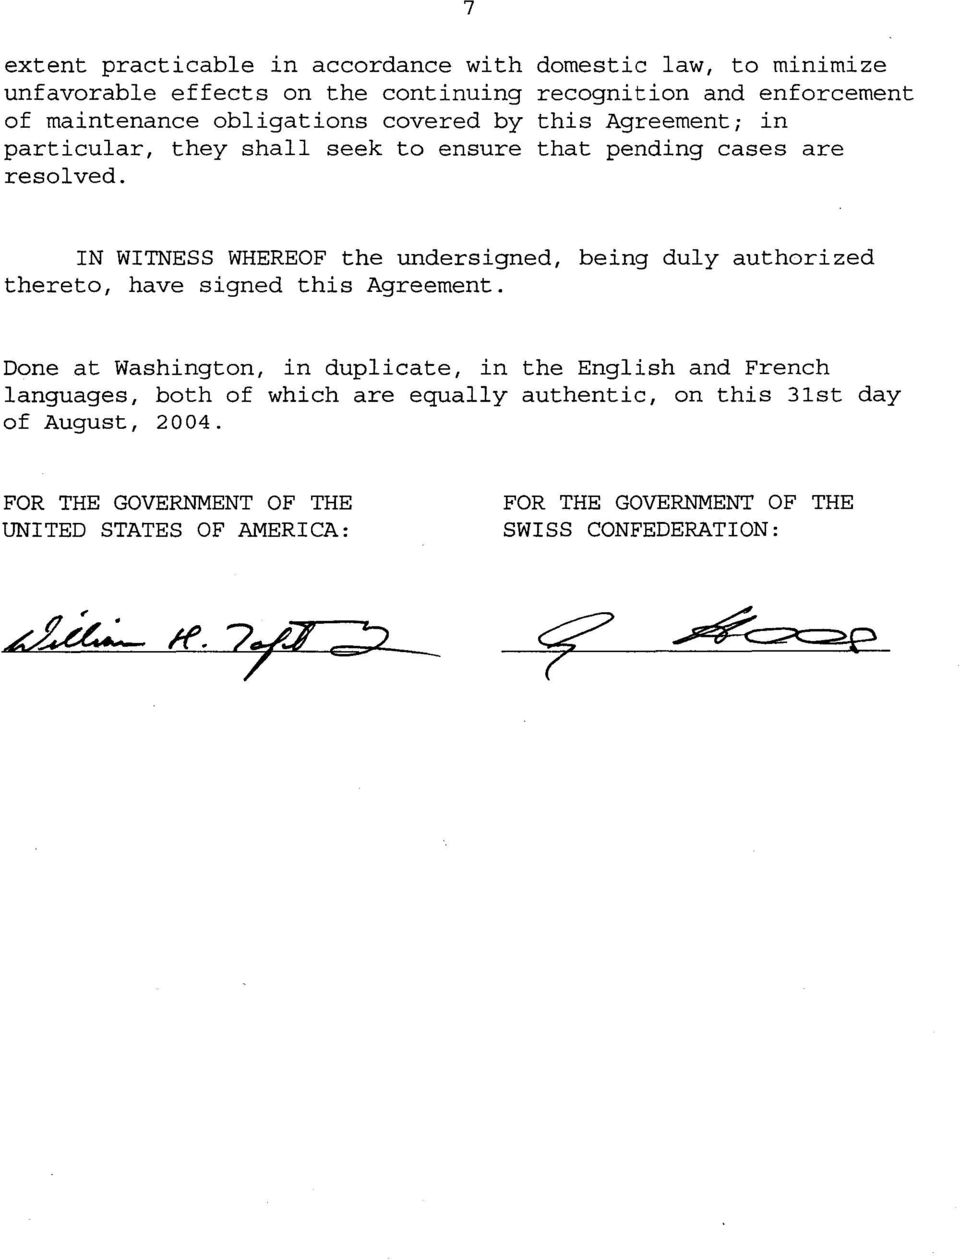 IN WITNESS WHEREOF the undersigned, being duly authorized thereto, have signed this Agreement.